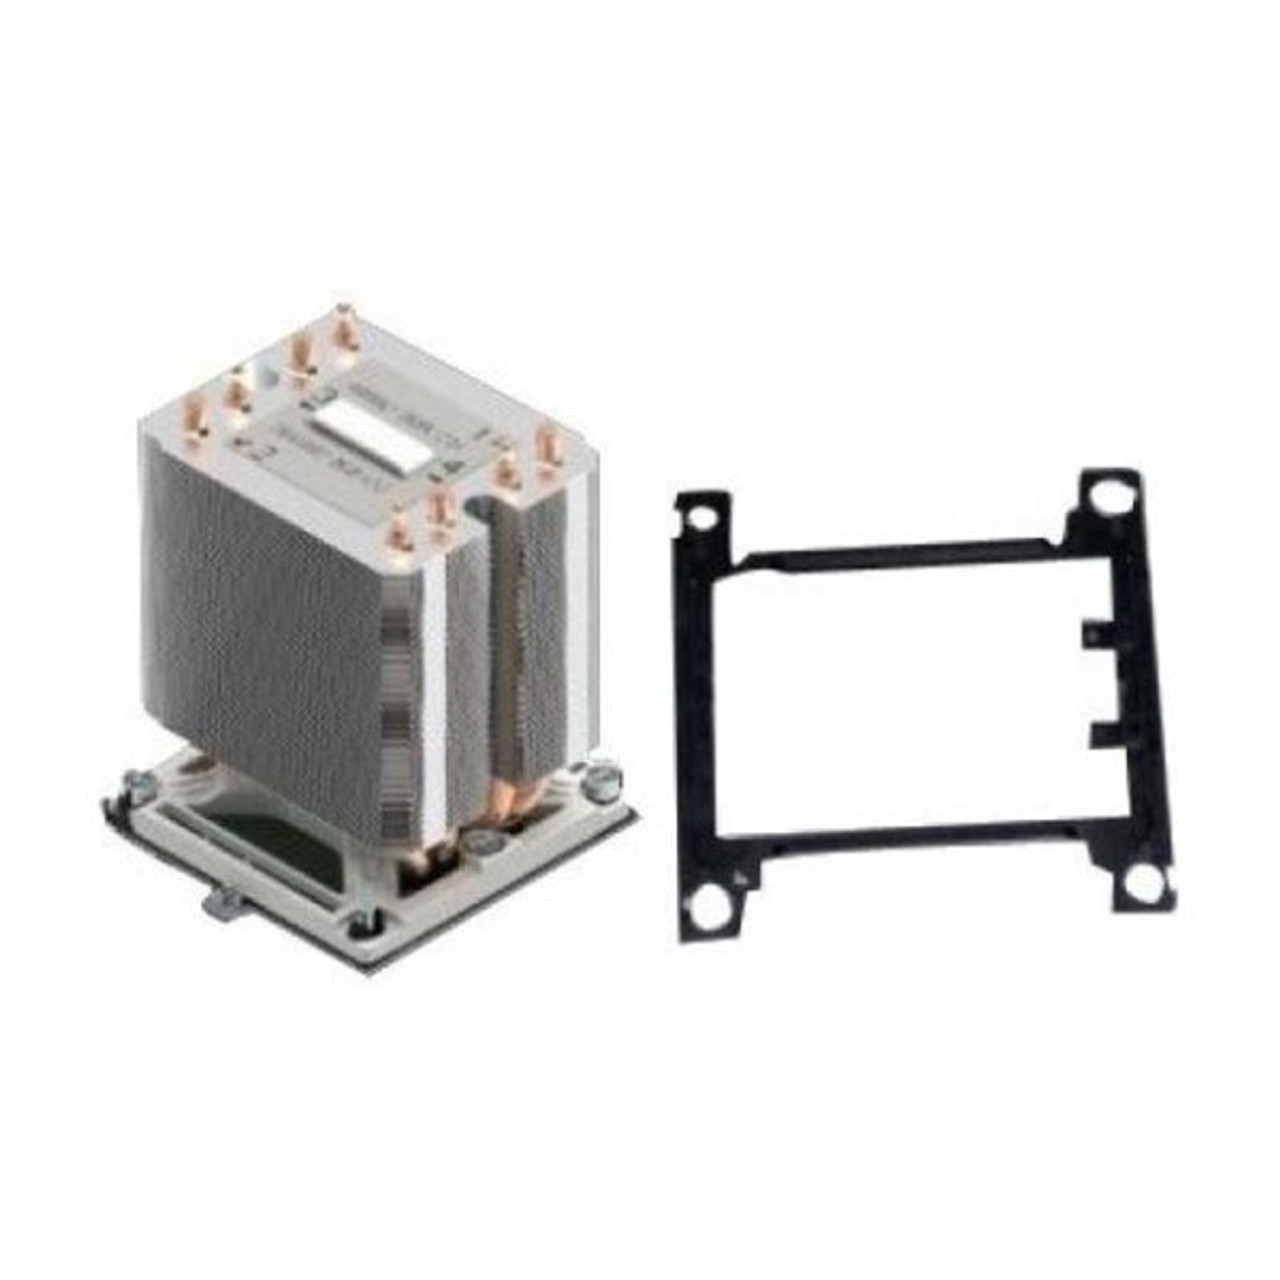 Image for Intel Tower Passive Heat Sink for Intel S2600STB Server Board CX Computer Superstore